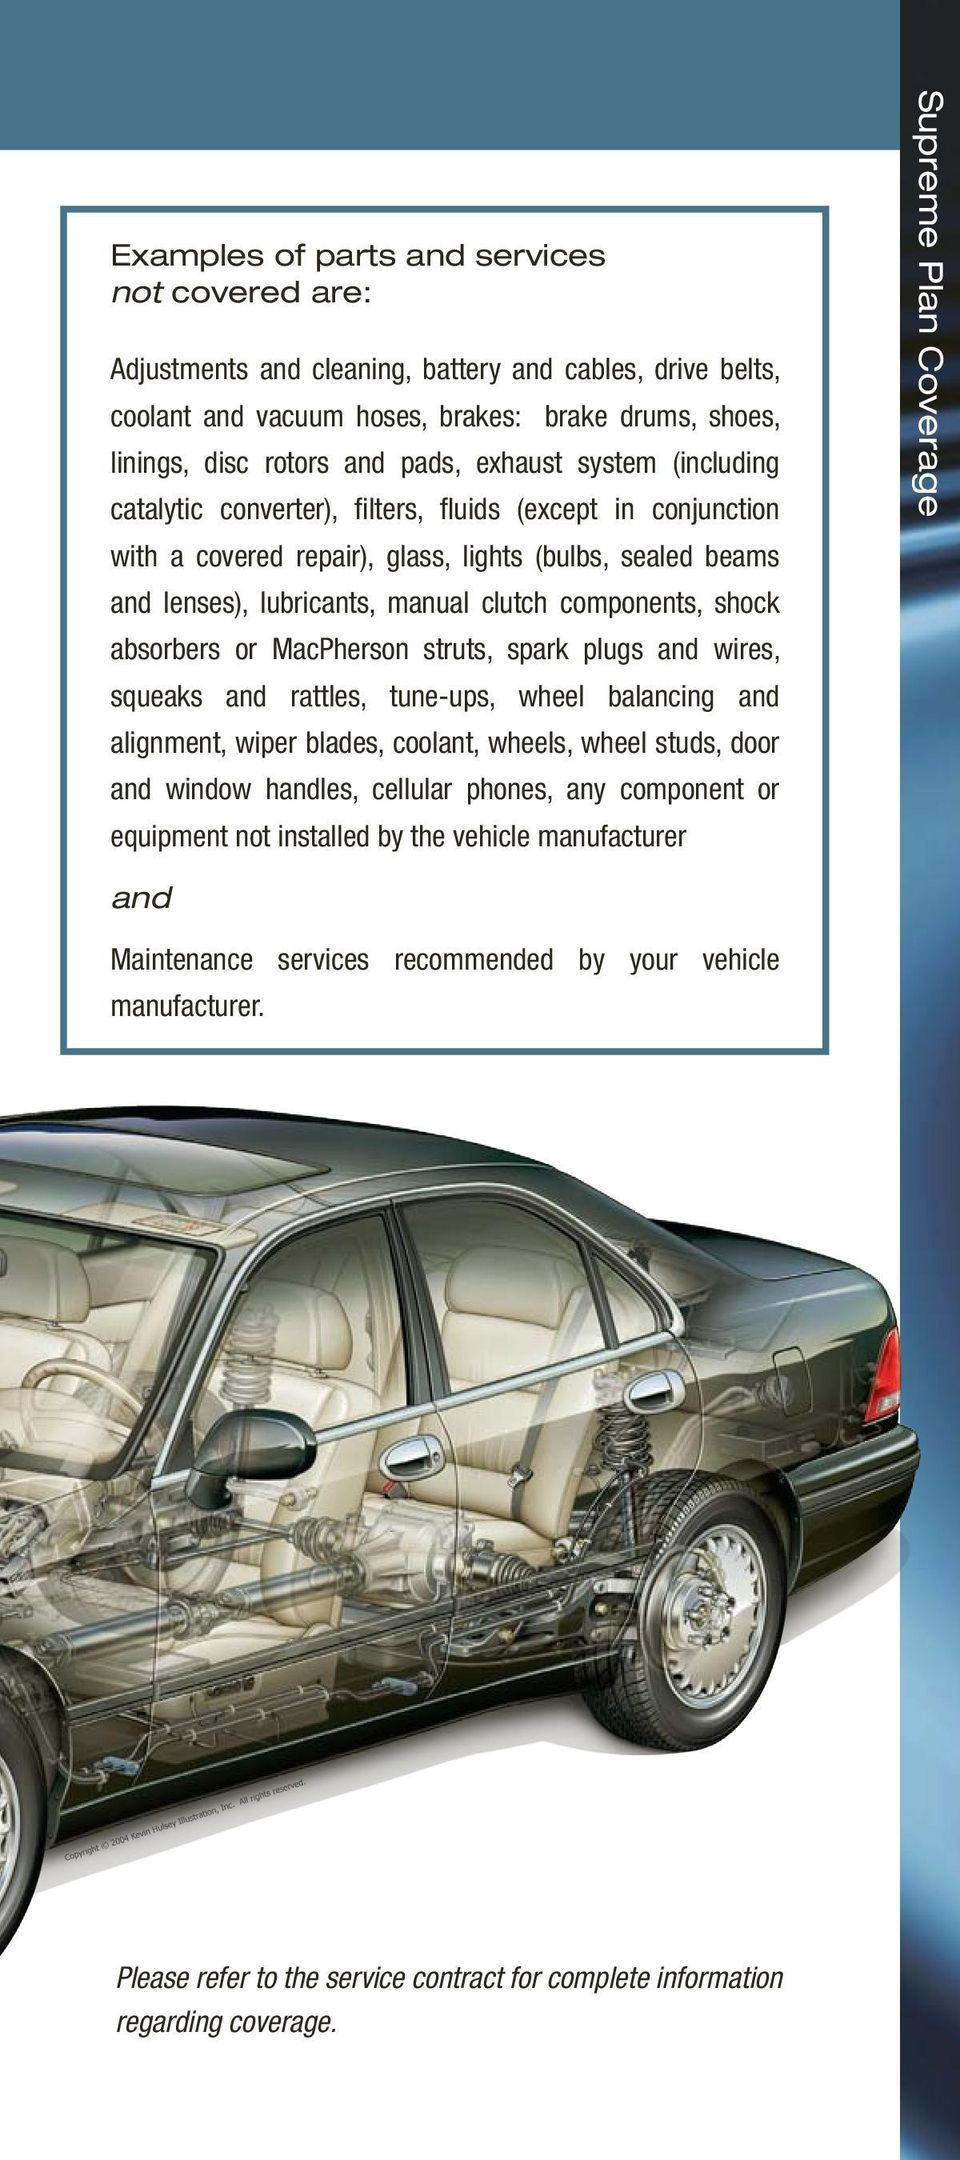 absorbers or MacPherson struts, spark plugs and wires, squeaks and rattles, tune-ups, wheel balancing and alignment, wiper blades, coolant, wheels, wheel studs, door and window handles, cellular